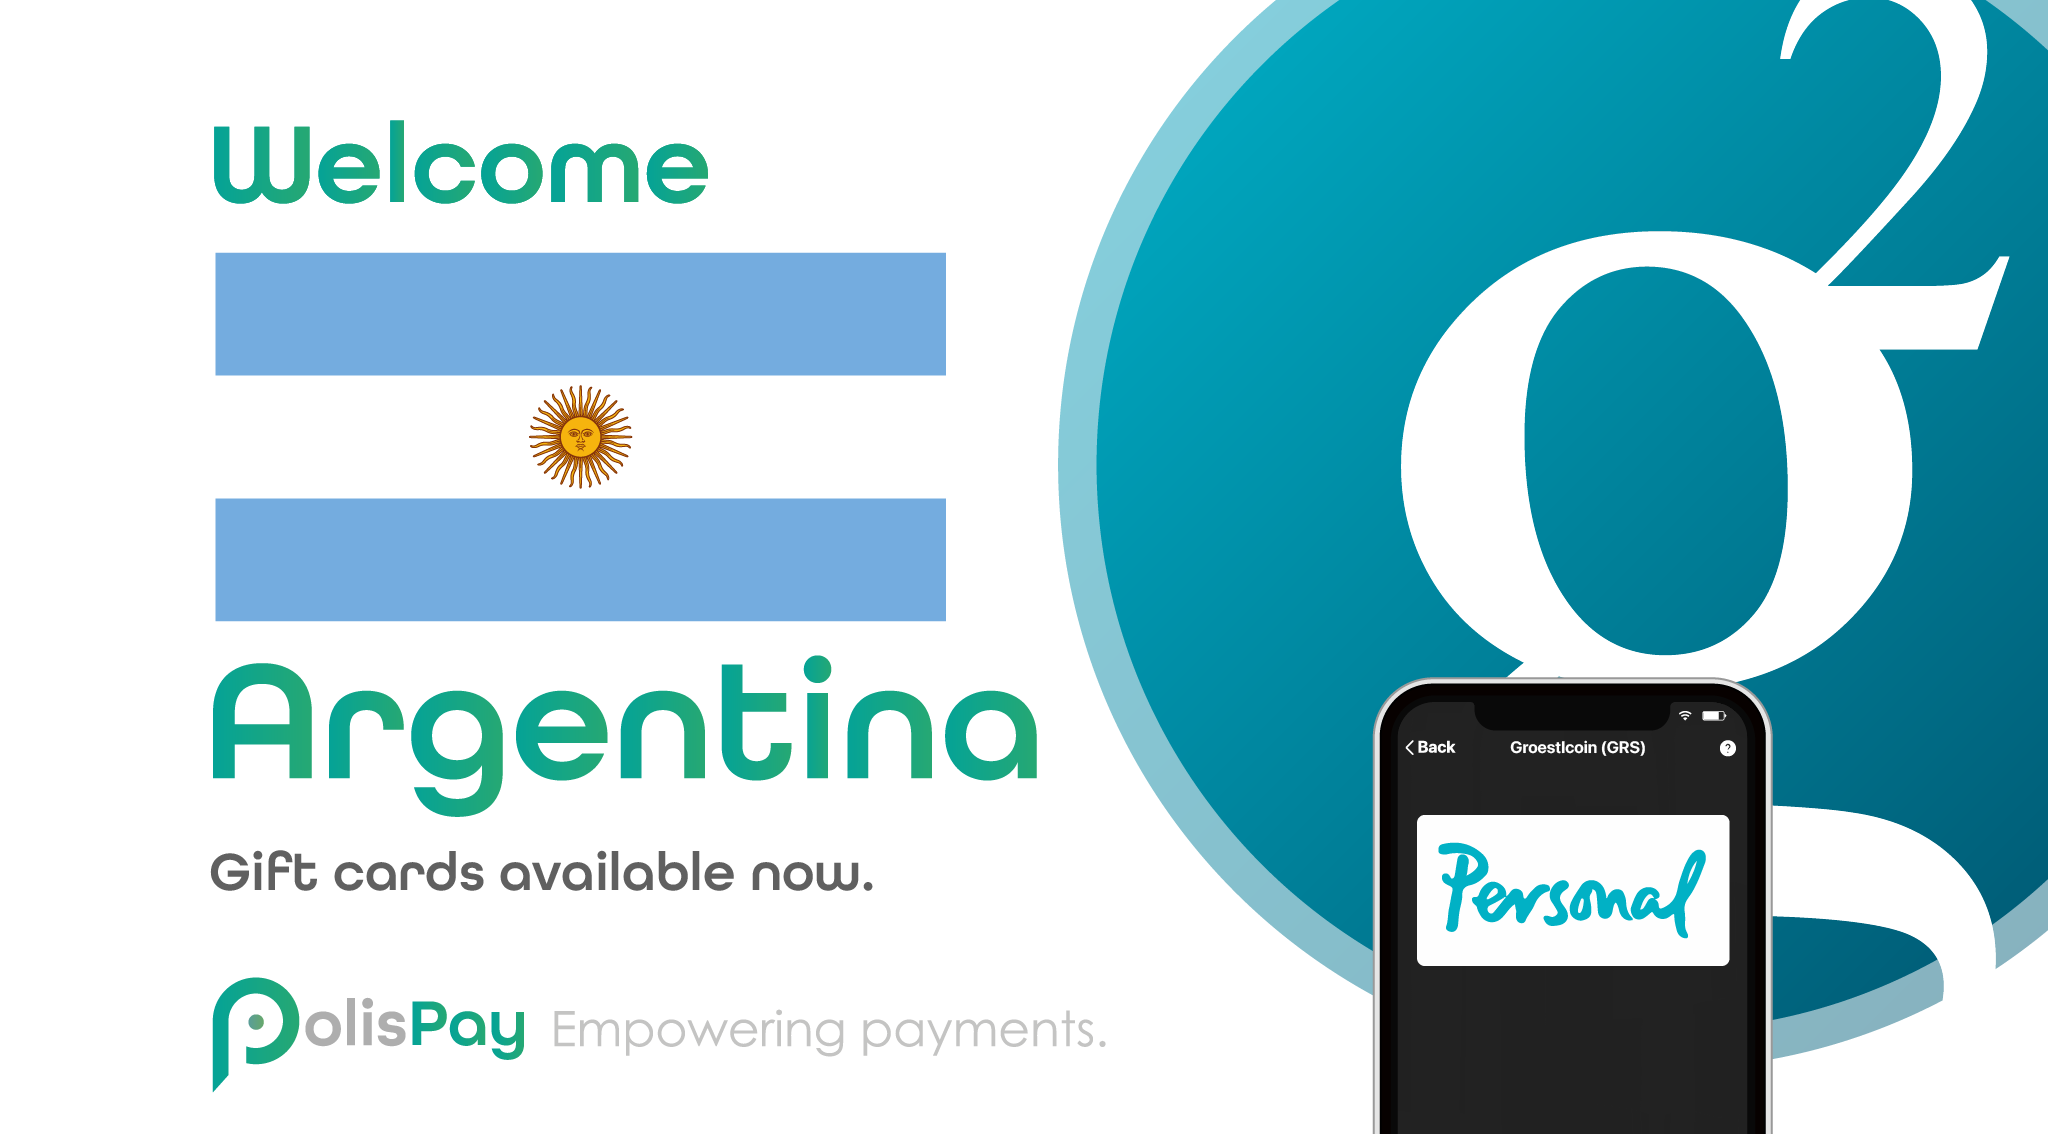 Groestlcoin ($GRS) Gift cards available now in Argentina!